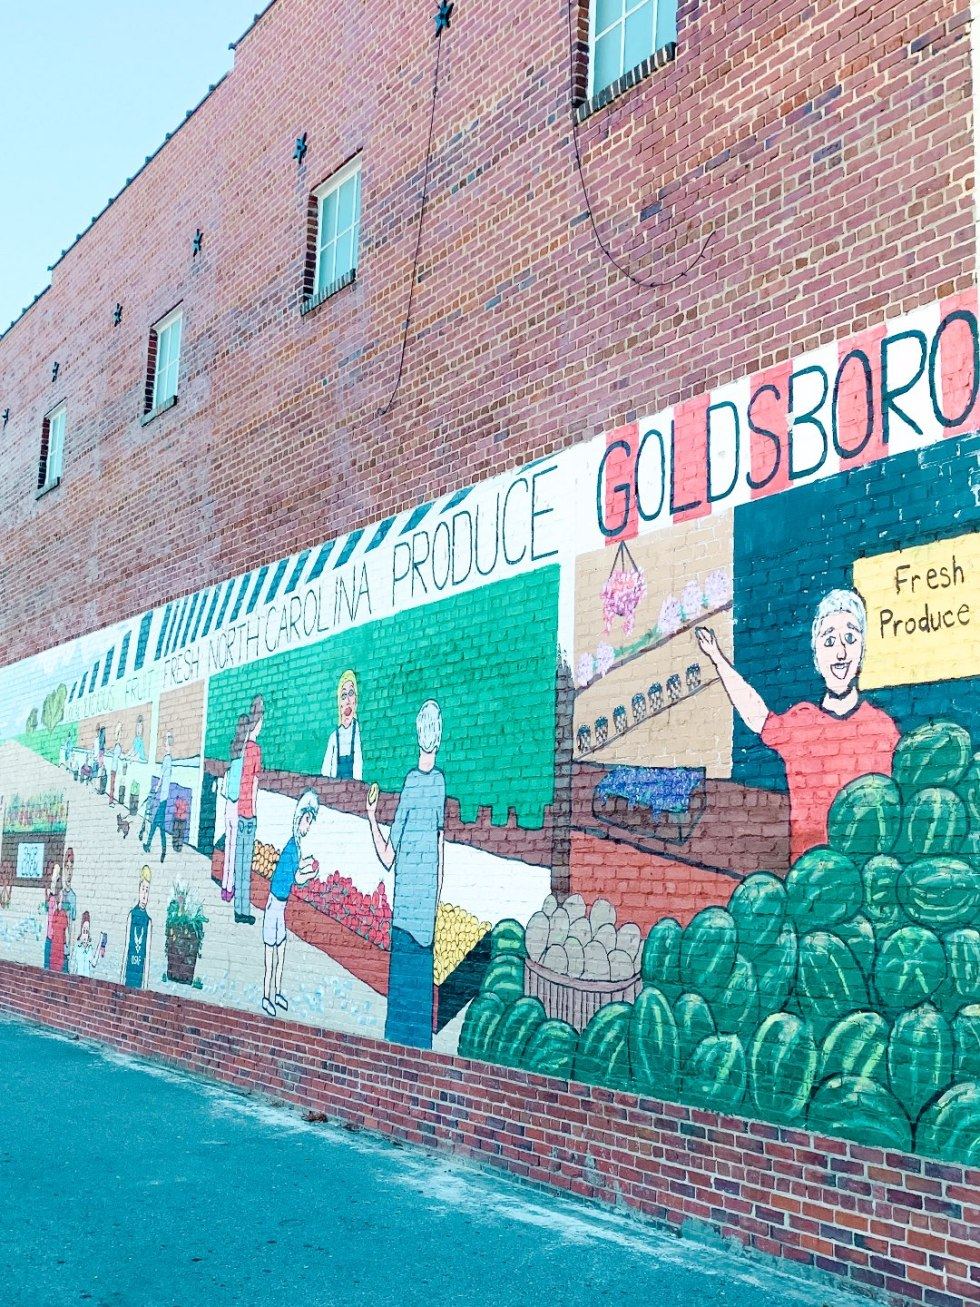 Eastern North Carolina Travel Guide: Top 10 Things to Do in Goldsboro NC by popular North Carolina blog, I'm Fixin' To: image of a building mural.